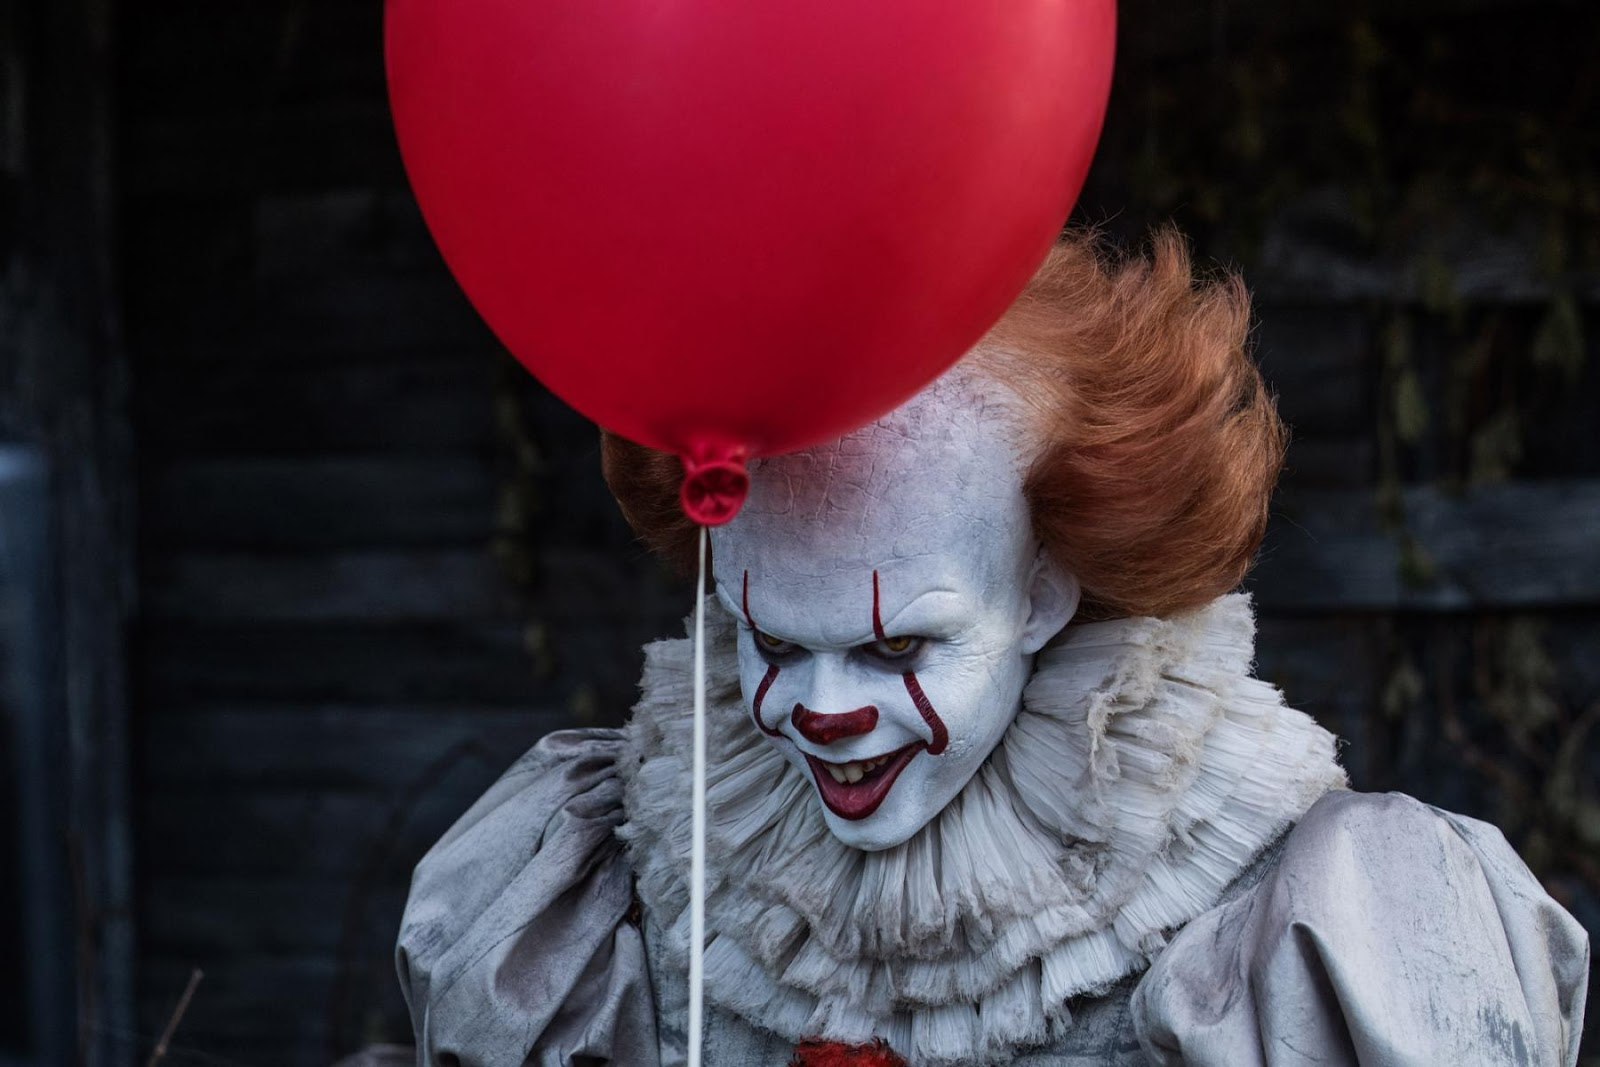 IT - Stephen King - 2017 - PENNYWISE